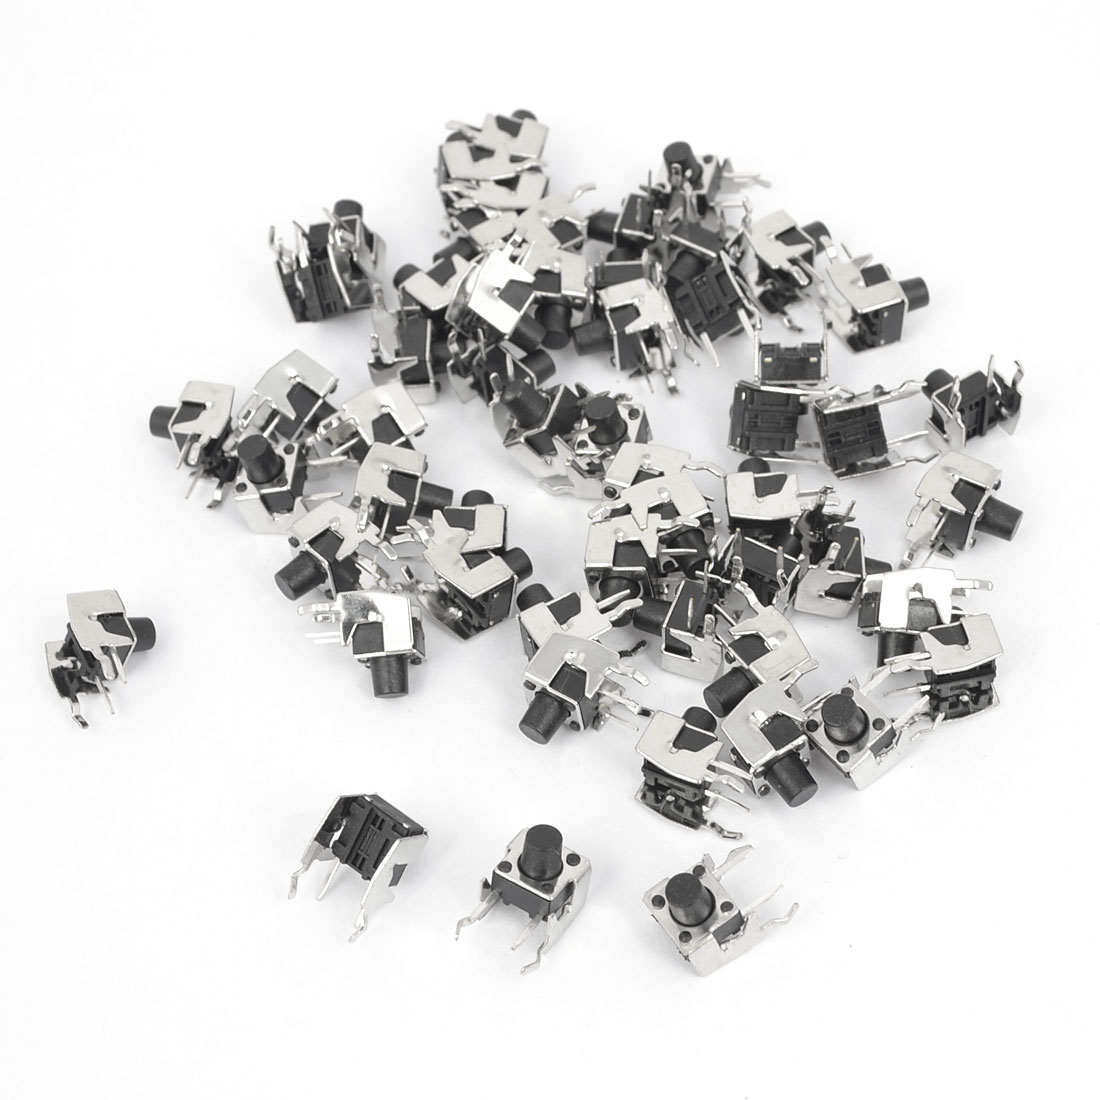 55Pcs Momentary PCB Side Mounting Fixed Bracket Pushbutton Push Button Tact Tactile Switch DIP 6mmx6mmx7mm